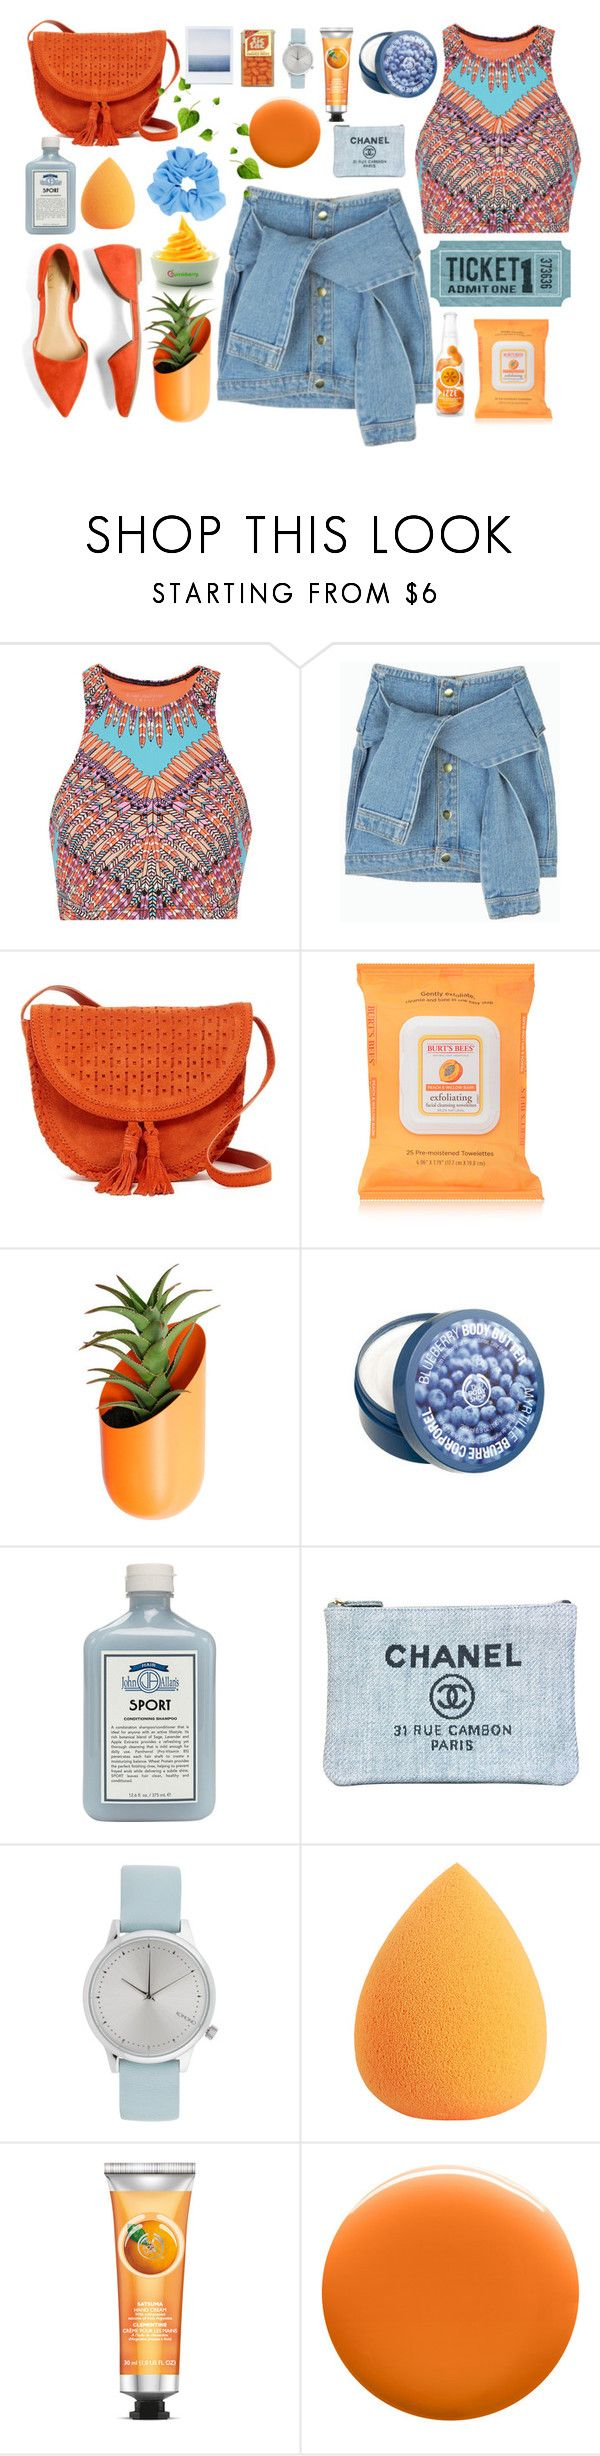 """""""Plus one"""" by susy-v ❤ liked on Polyvore featuring Mara Hoffman, Shiraleah, MANGO, Burt's Bees, Wallter, The Body Shop, John Allan's, Chanel, Komono and Uslu Airlines"""